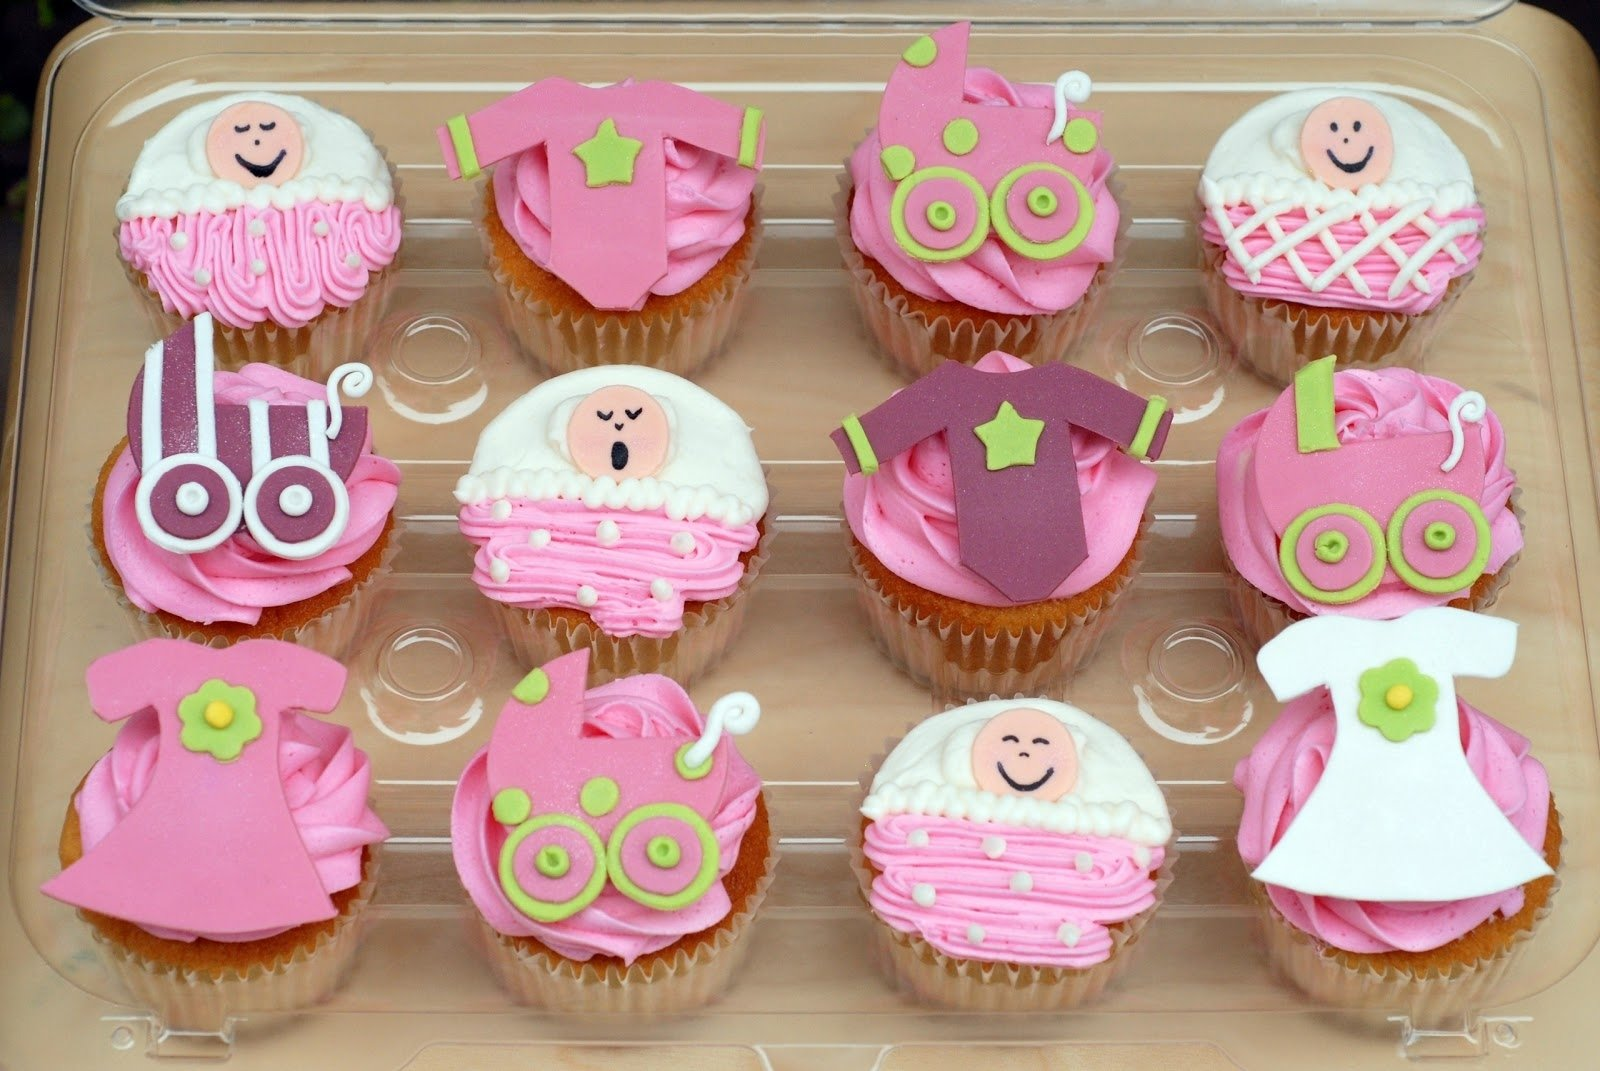 10 Perfect Girl Baby Shower Cupcake Ideas baby shower cupcake ideas 1 2021